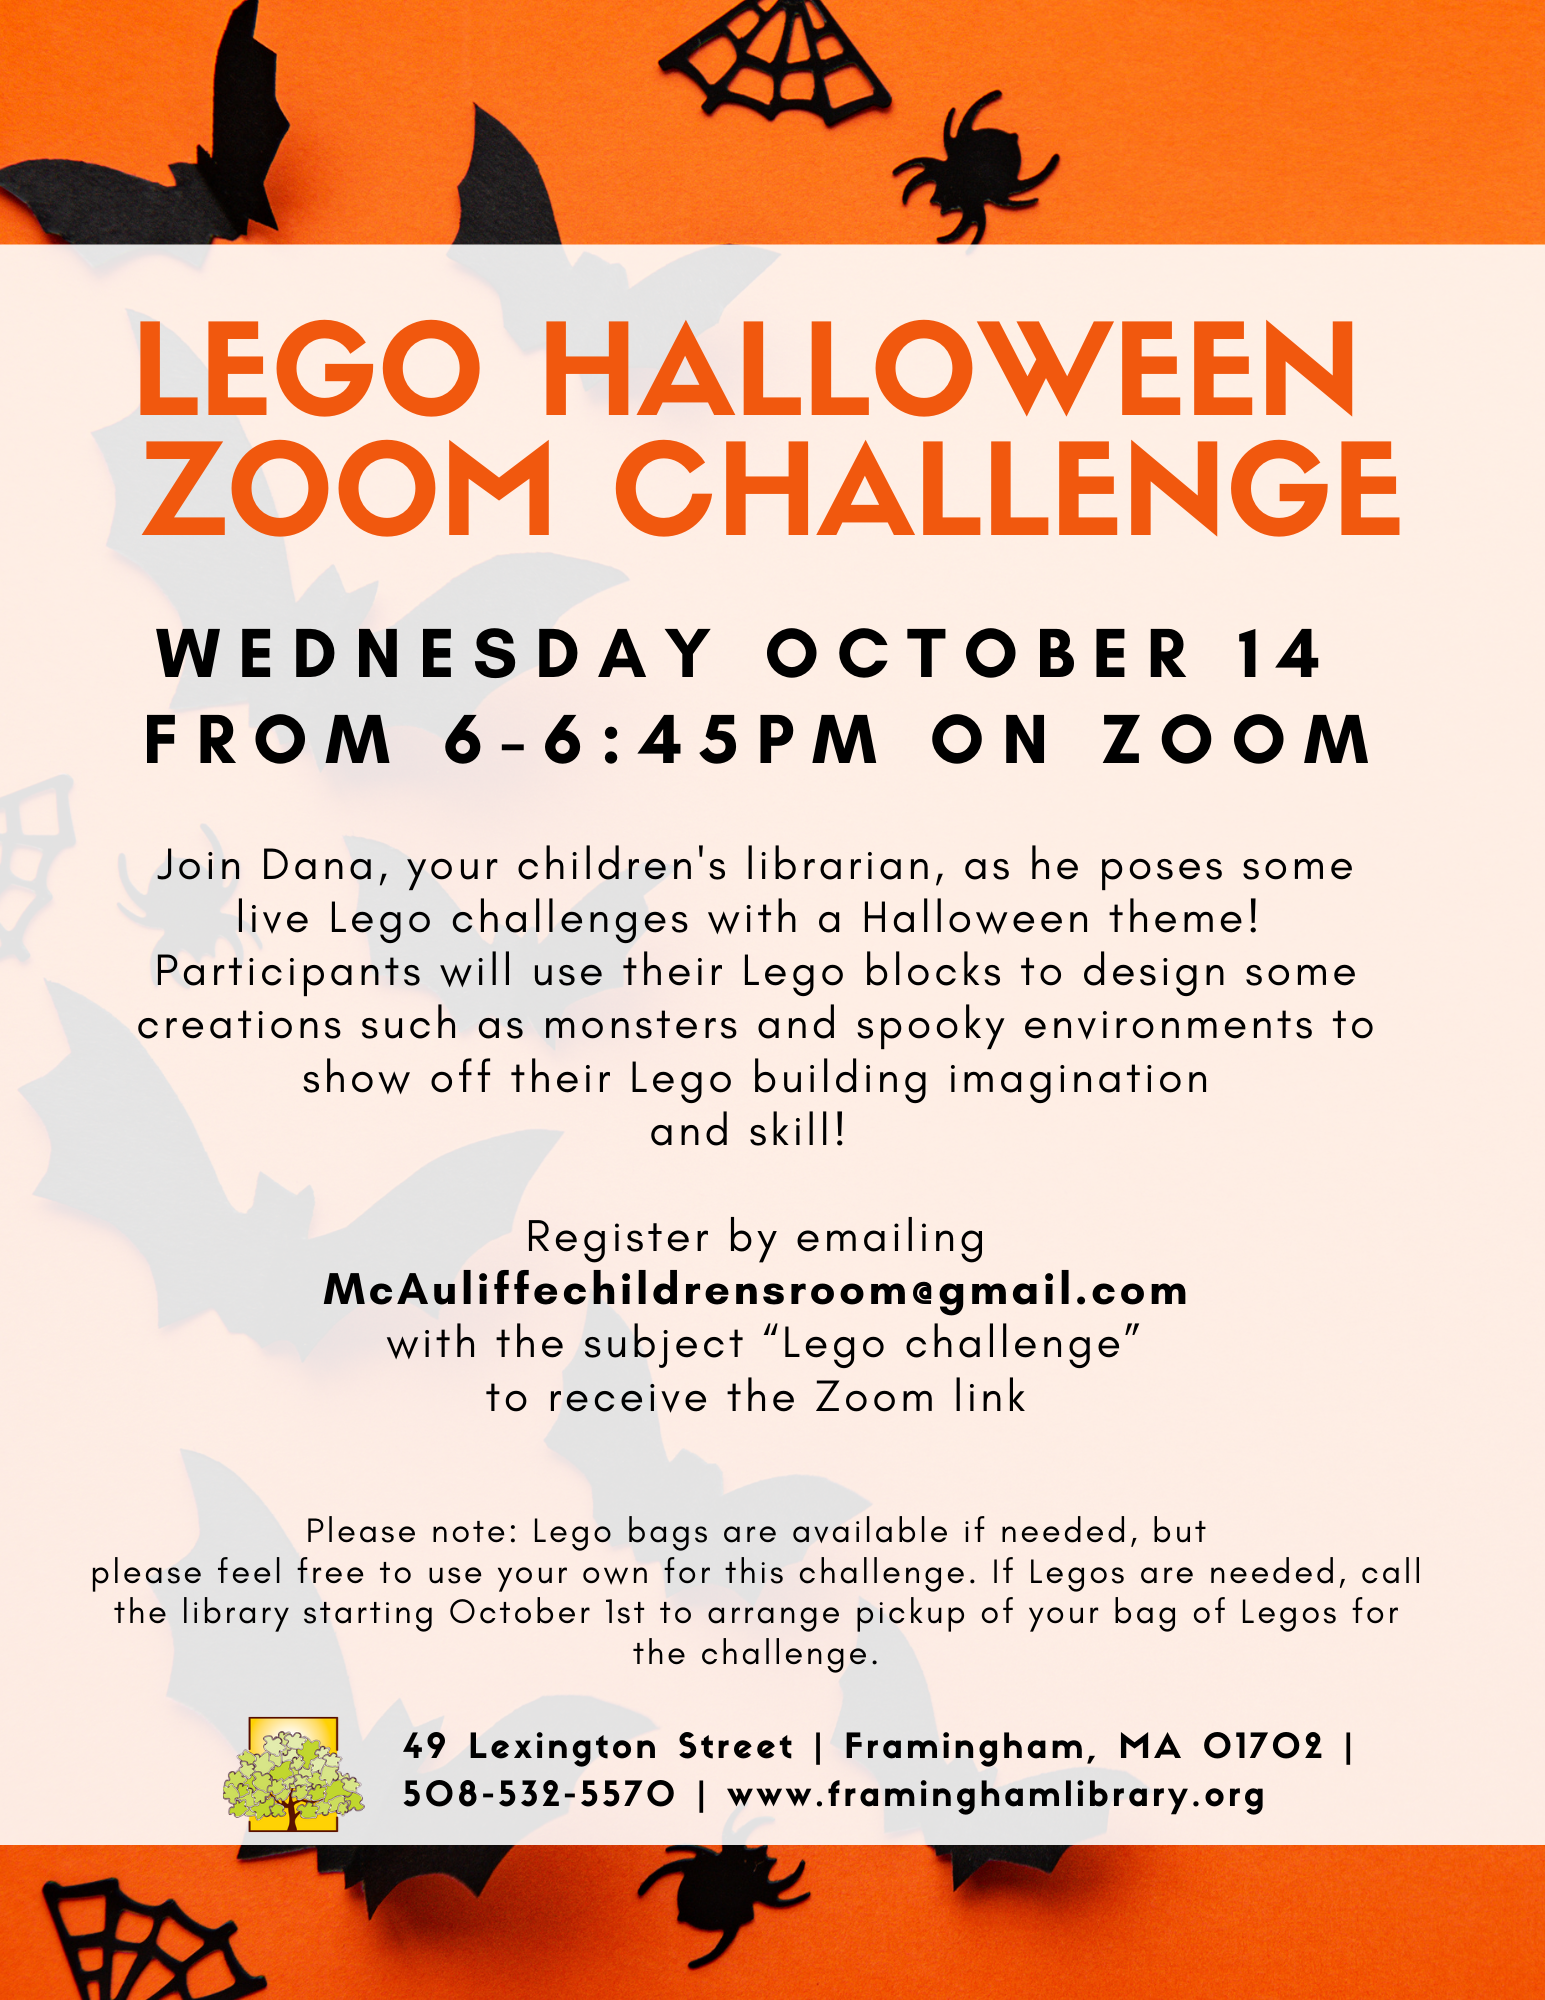 Lego Halloween Zoom Challenge thumbnail Photo